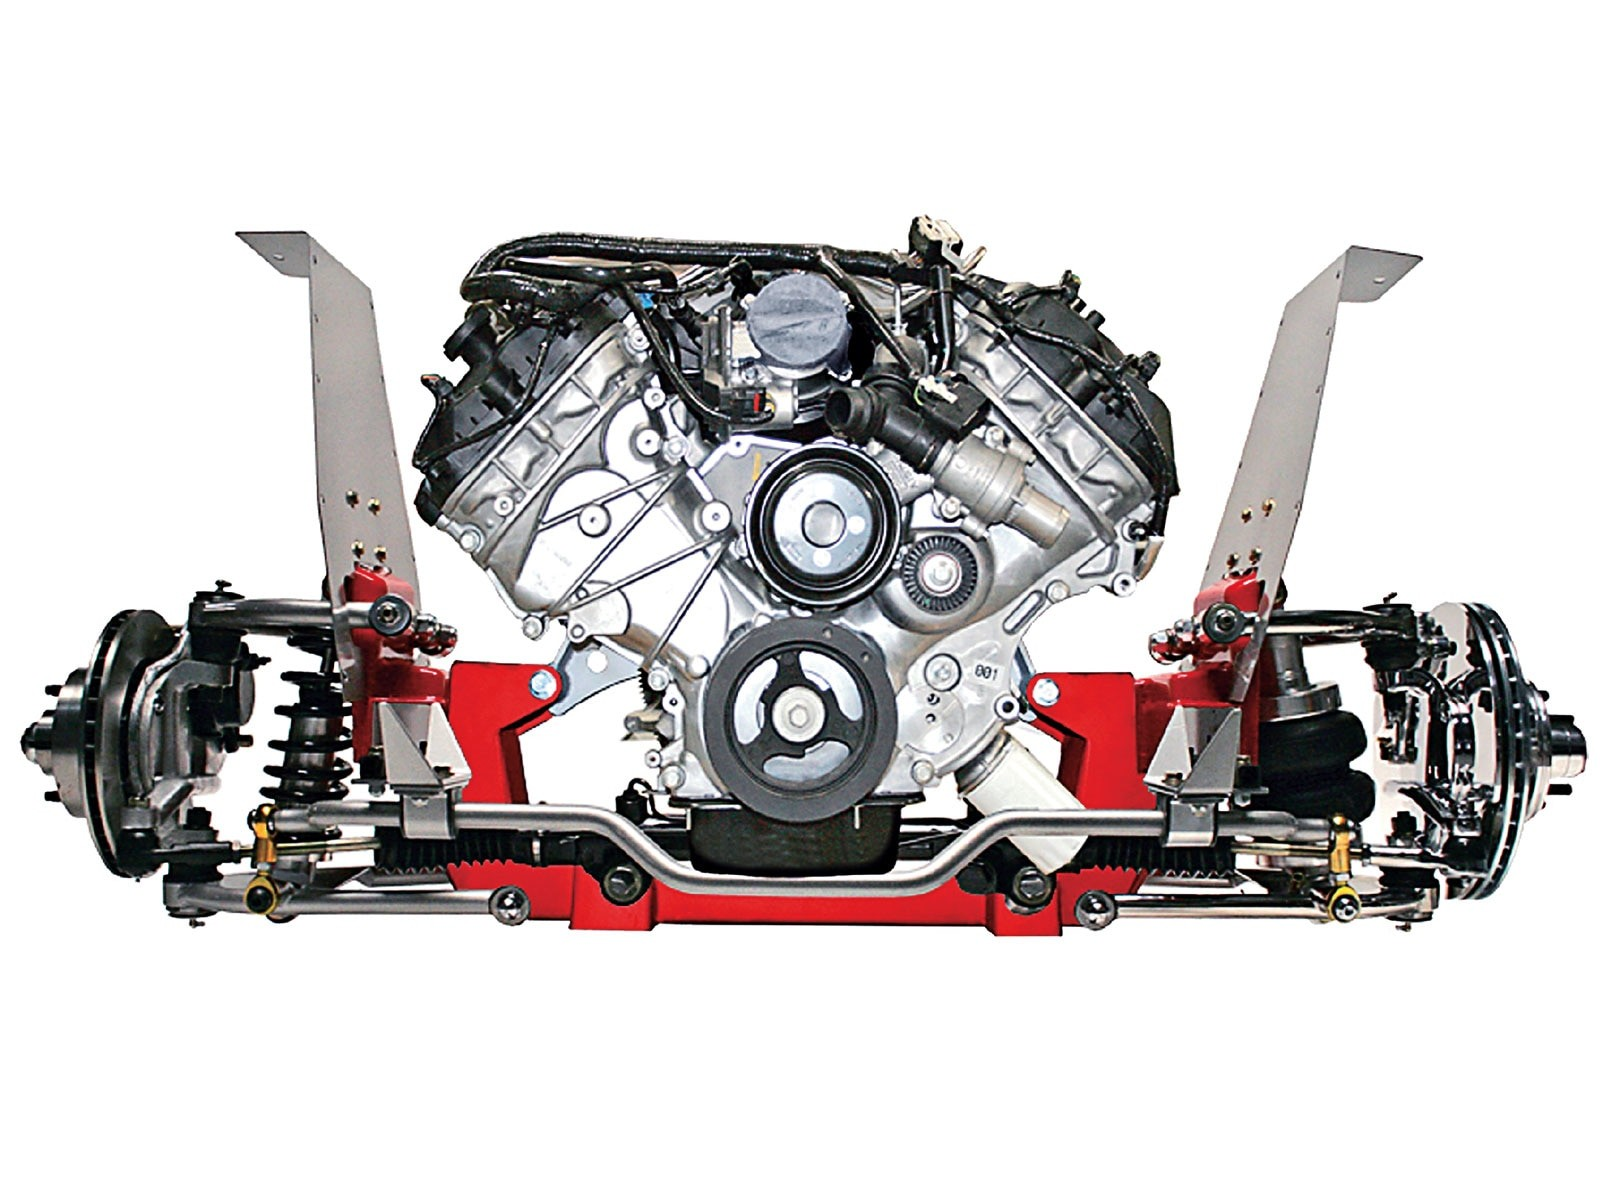 Ford 4 0 sohc Engine Diagram ford Coyote Engine Swap Guide Hot Rod Network Of Ford 4 0 sohc Engine Diagram